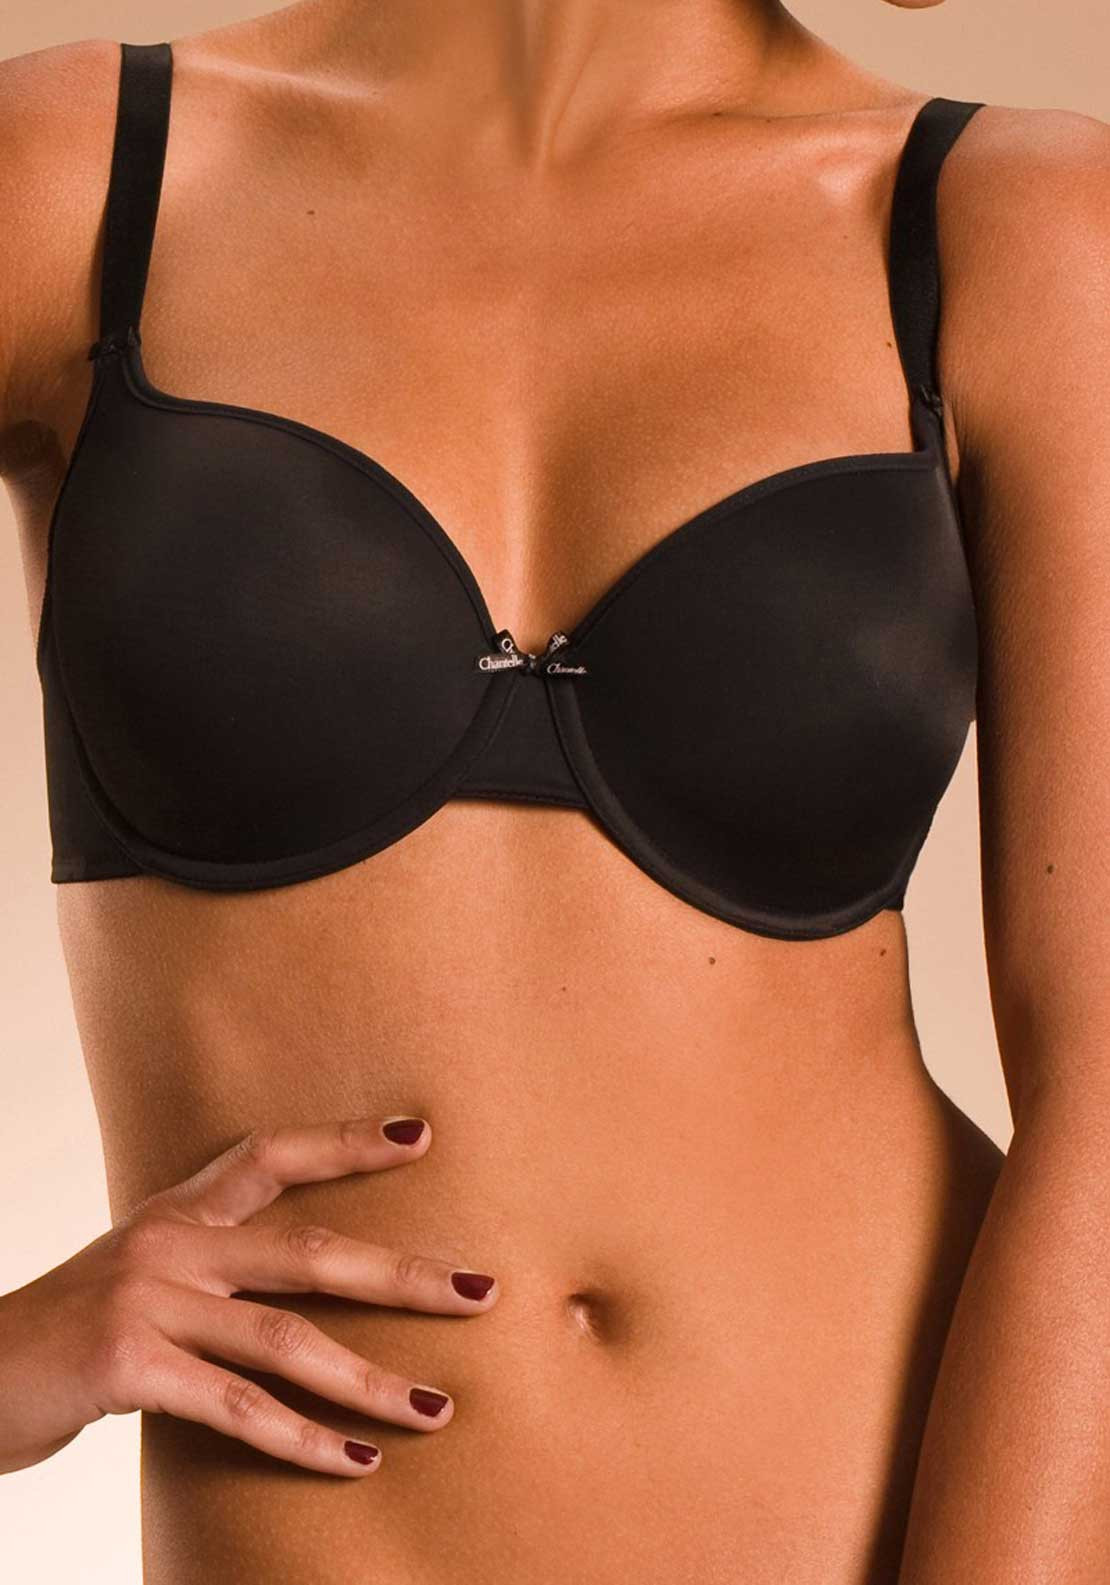 Chantelle Basic Invisible T-Shirt Bra, Black